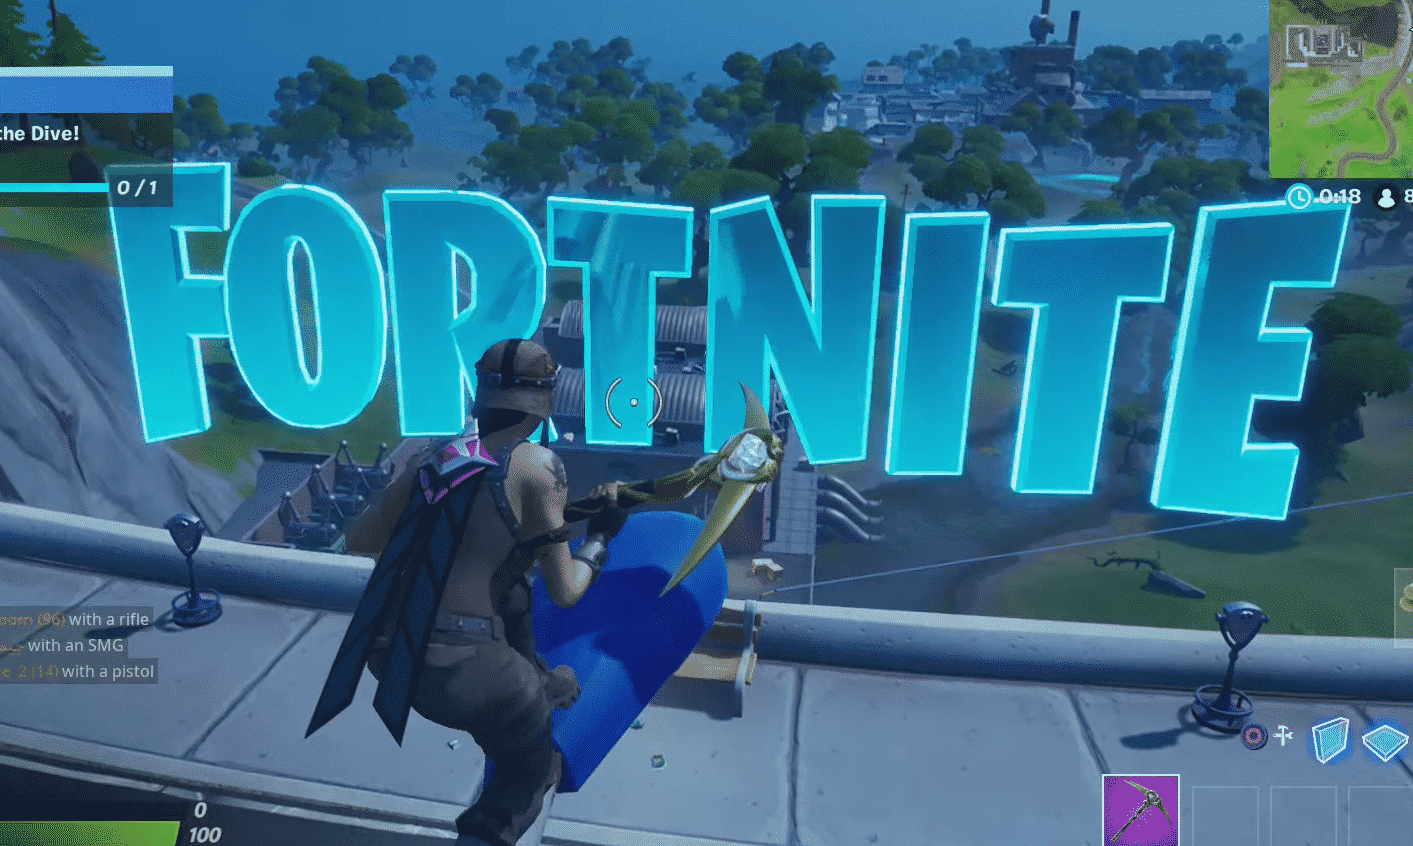 Search the Fortnite Hidden E Found in the Dive! Loading Screen Location